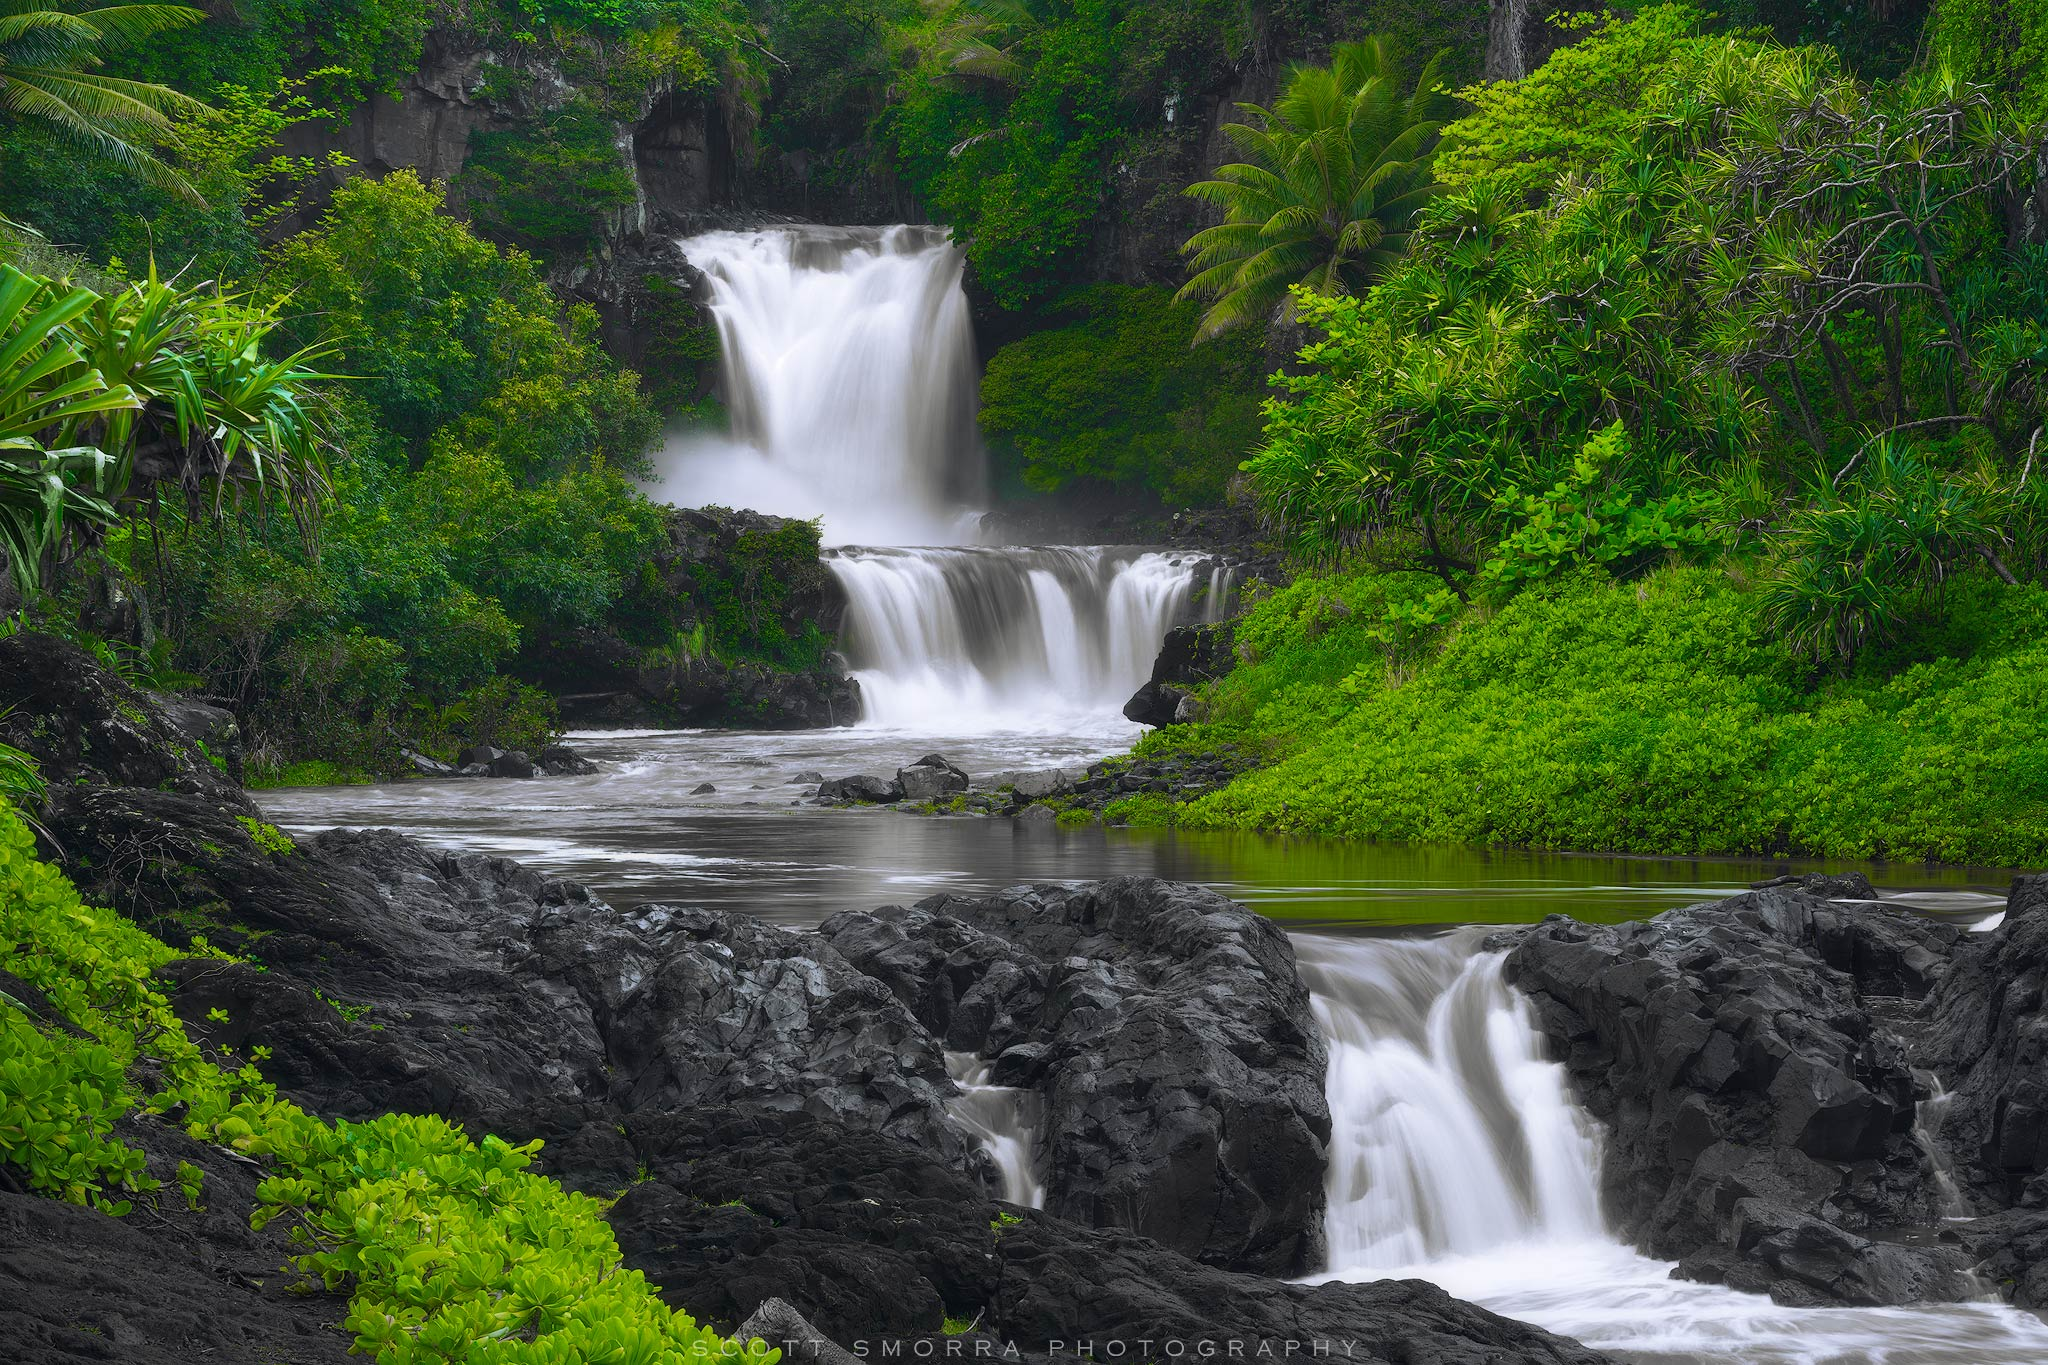 Fine Art Limited Edition of 100 - High water and lush tropical vegetation at the Pools of Oheo in Haleakala National Park, Maui...